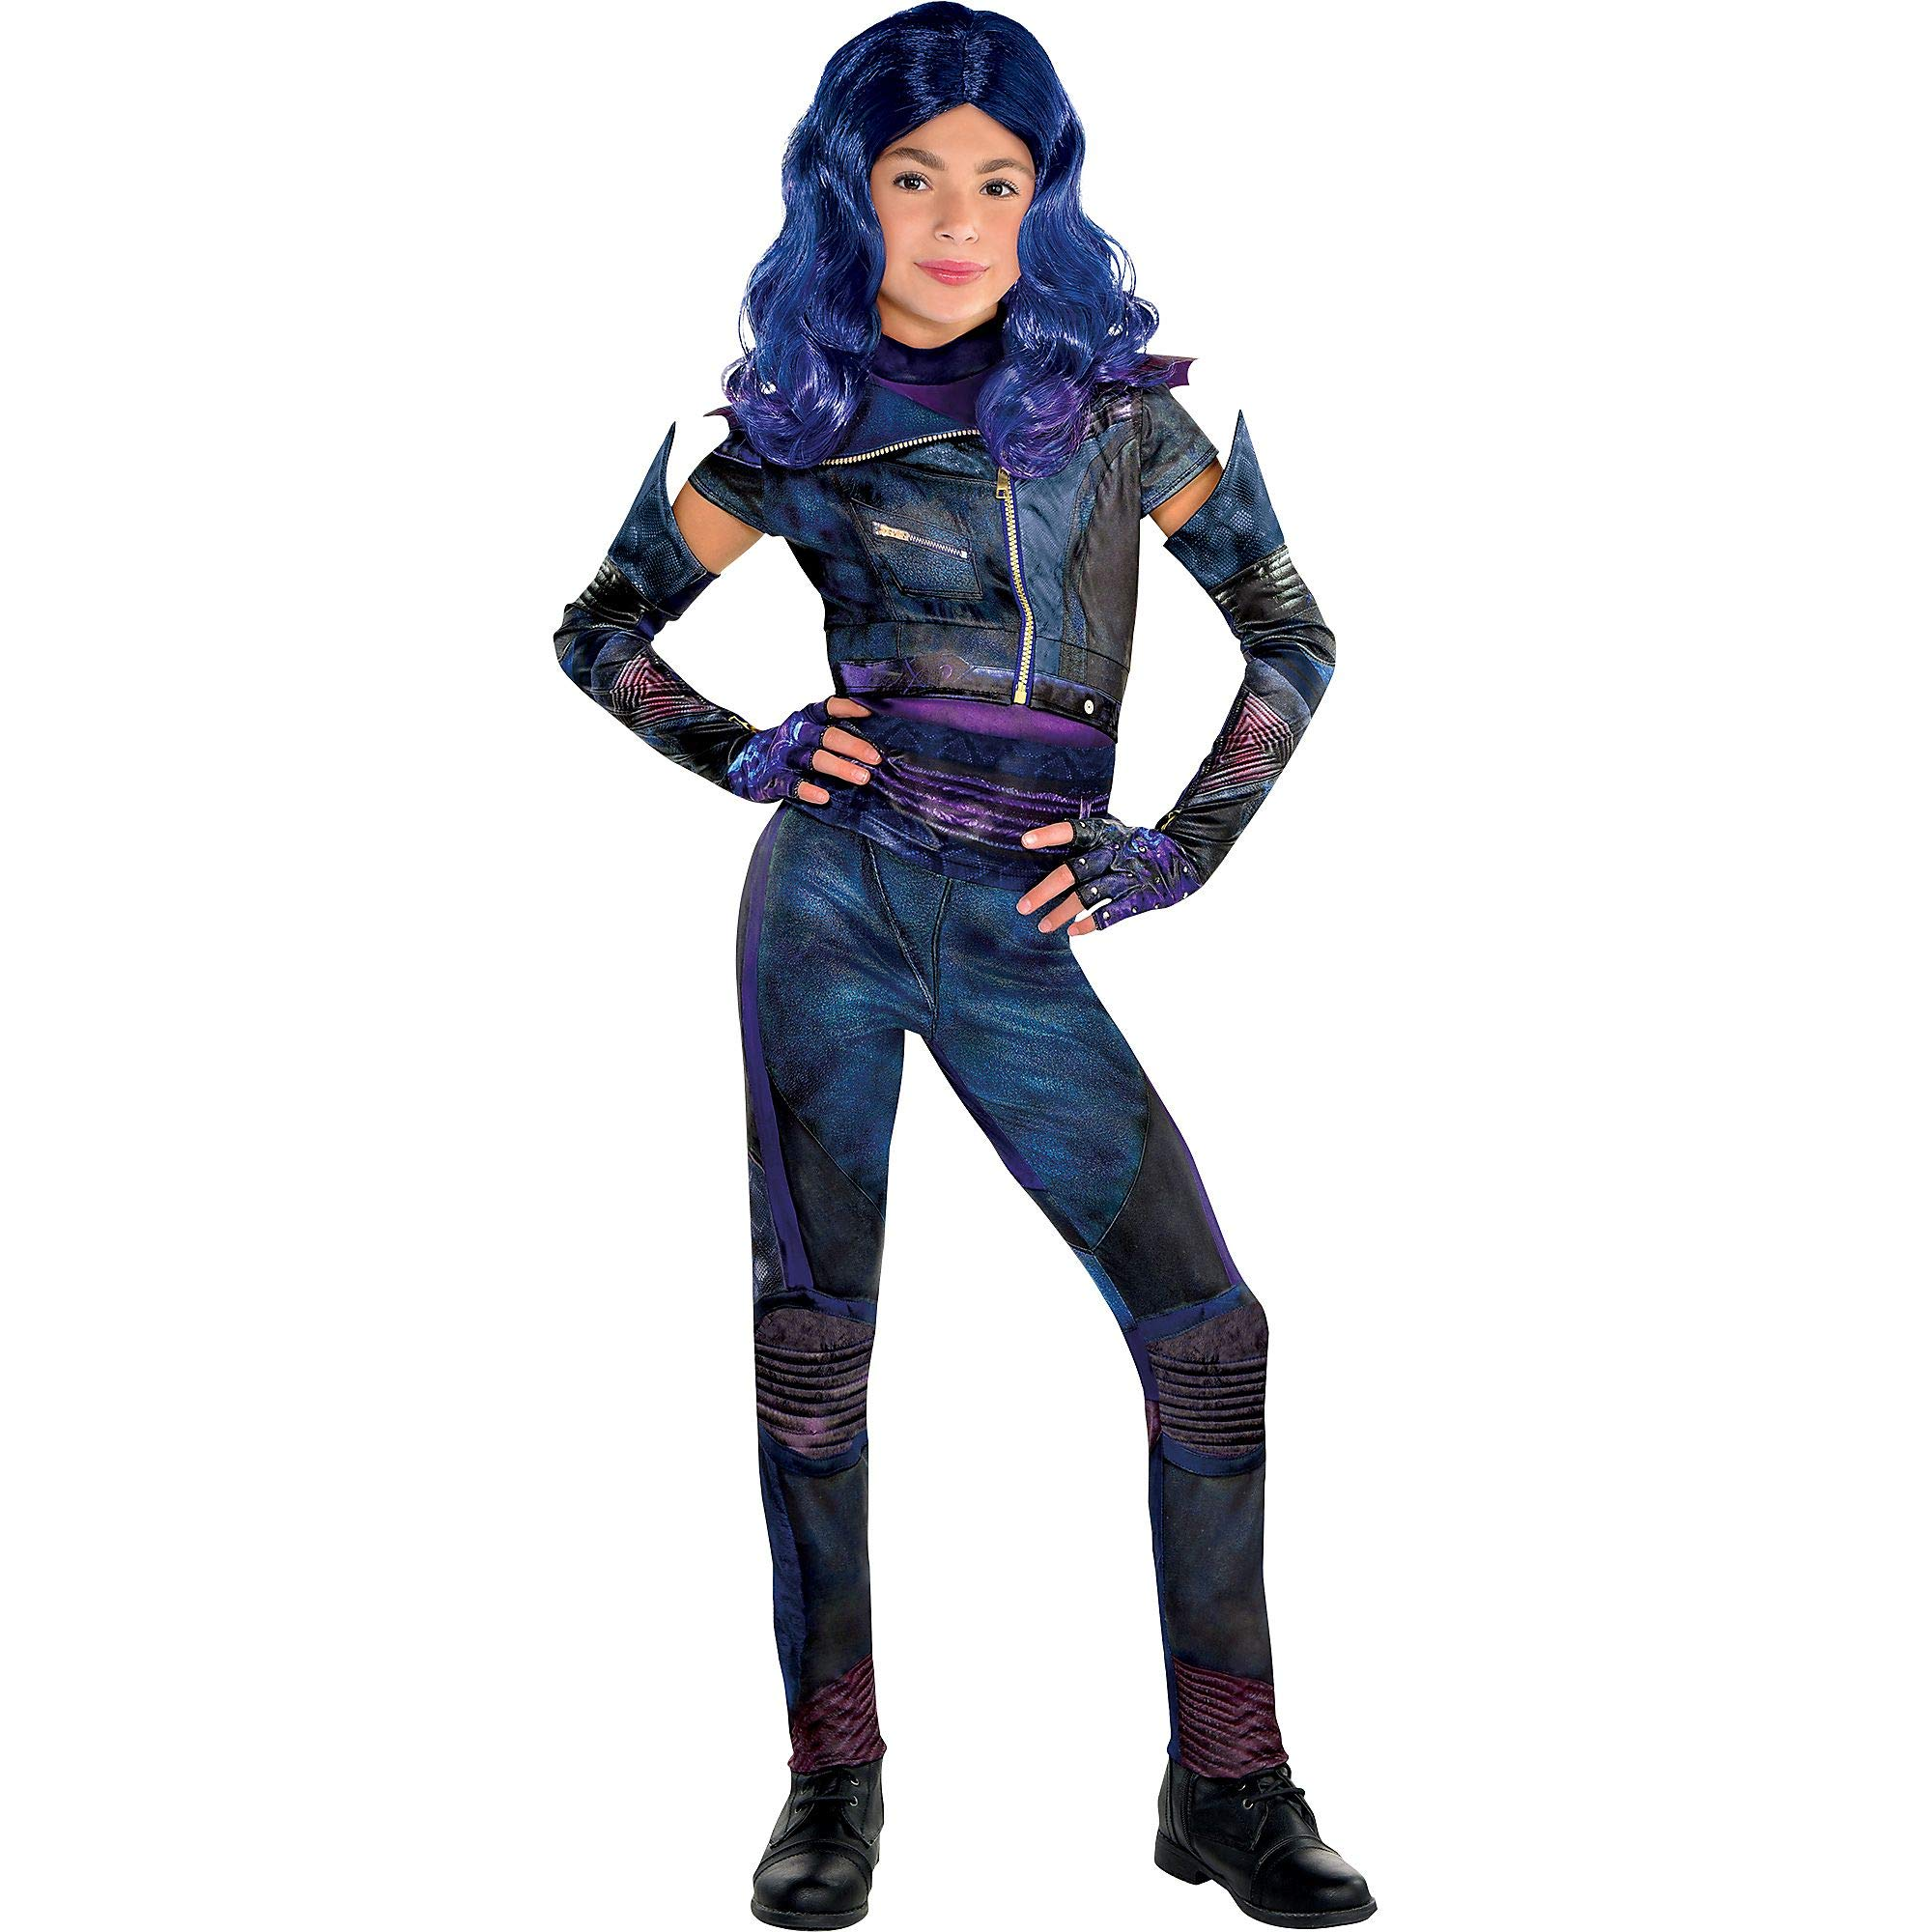 Party City Mal Halloween Costume for Girls, Descendants 3, Medium, Includes Accessories